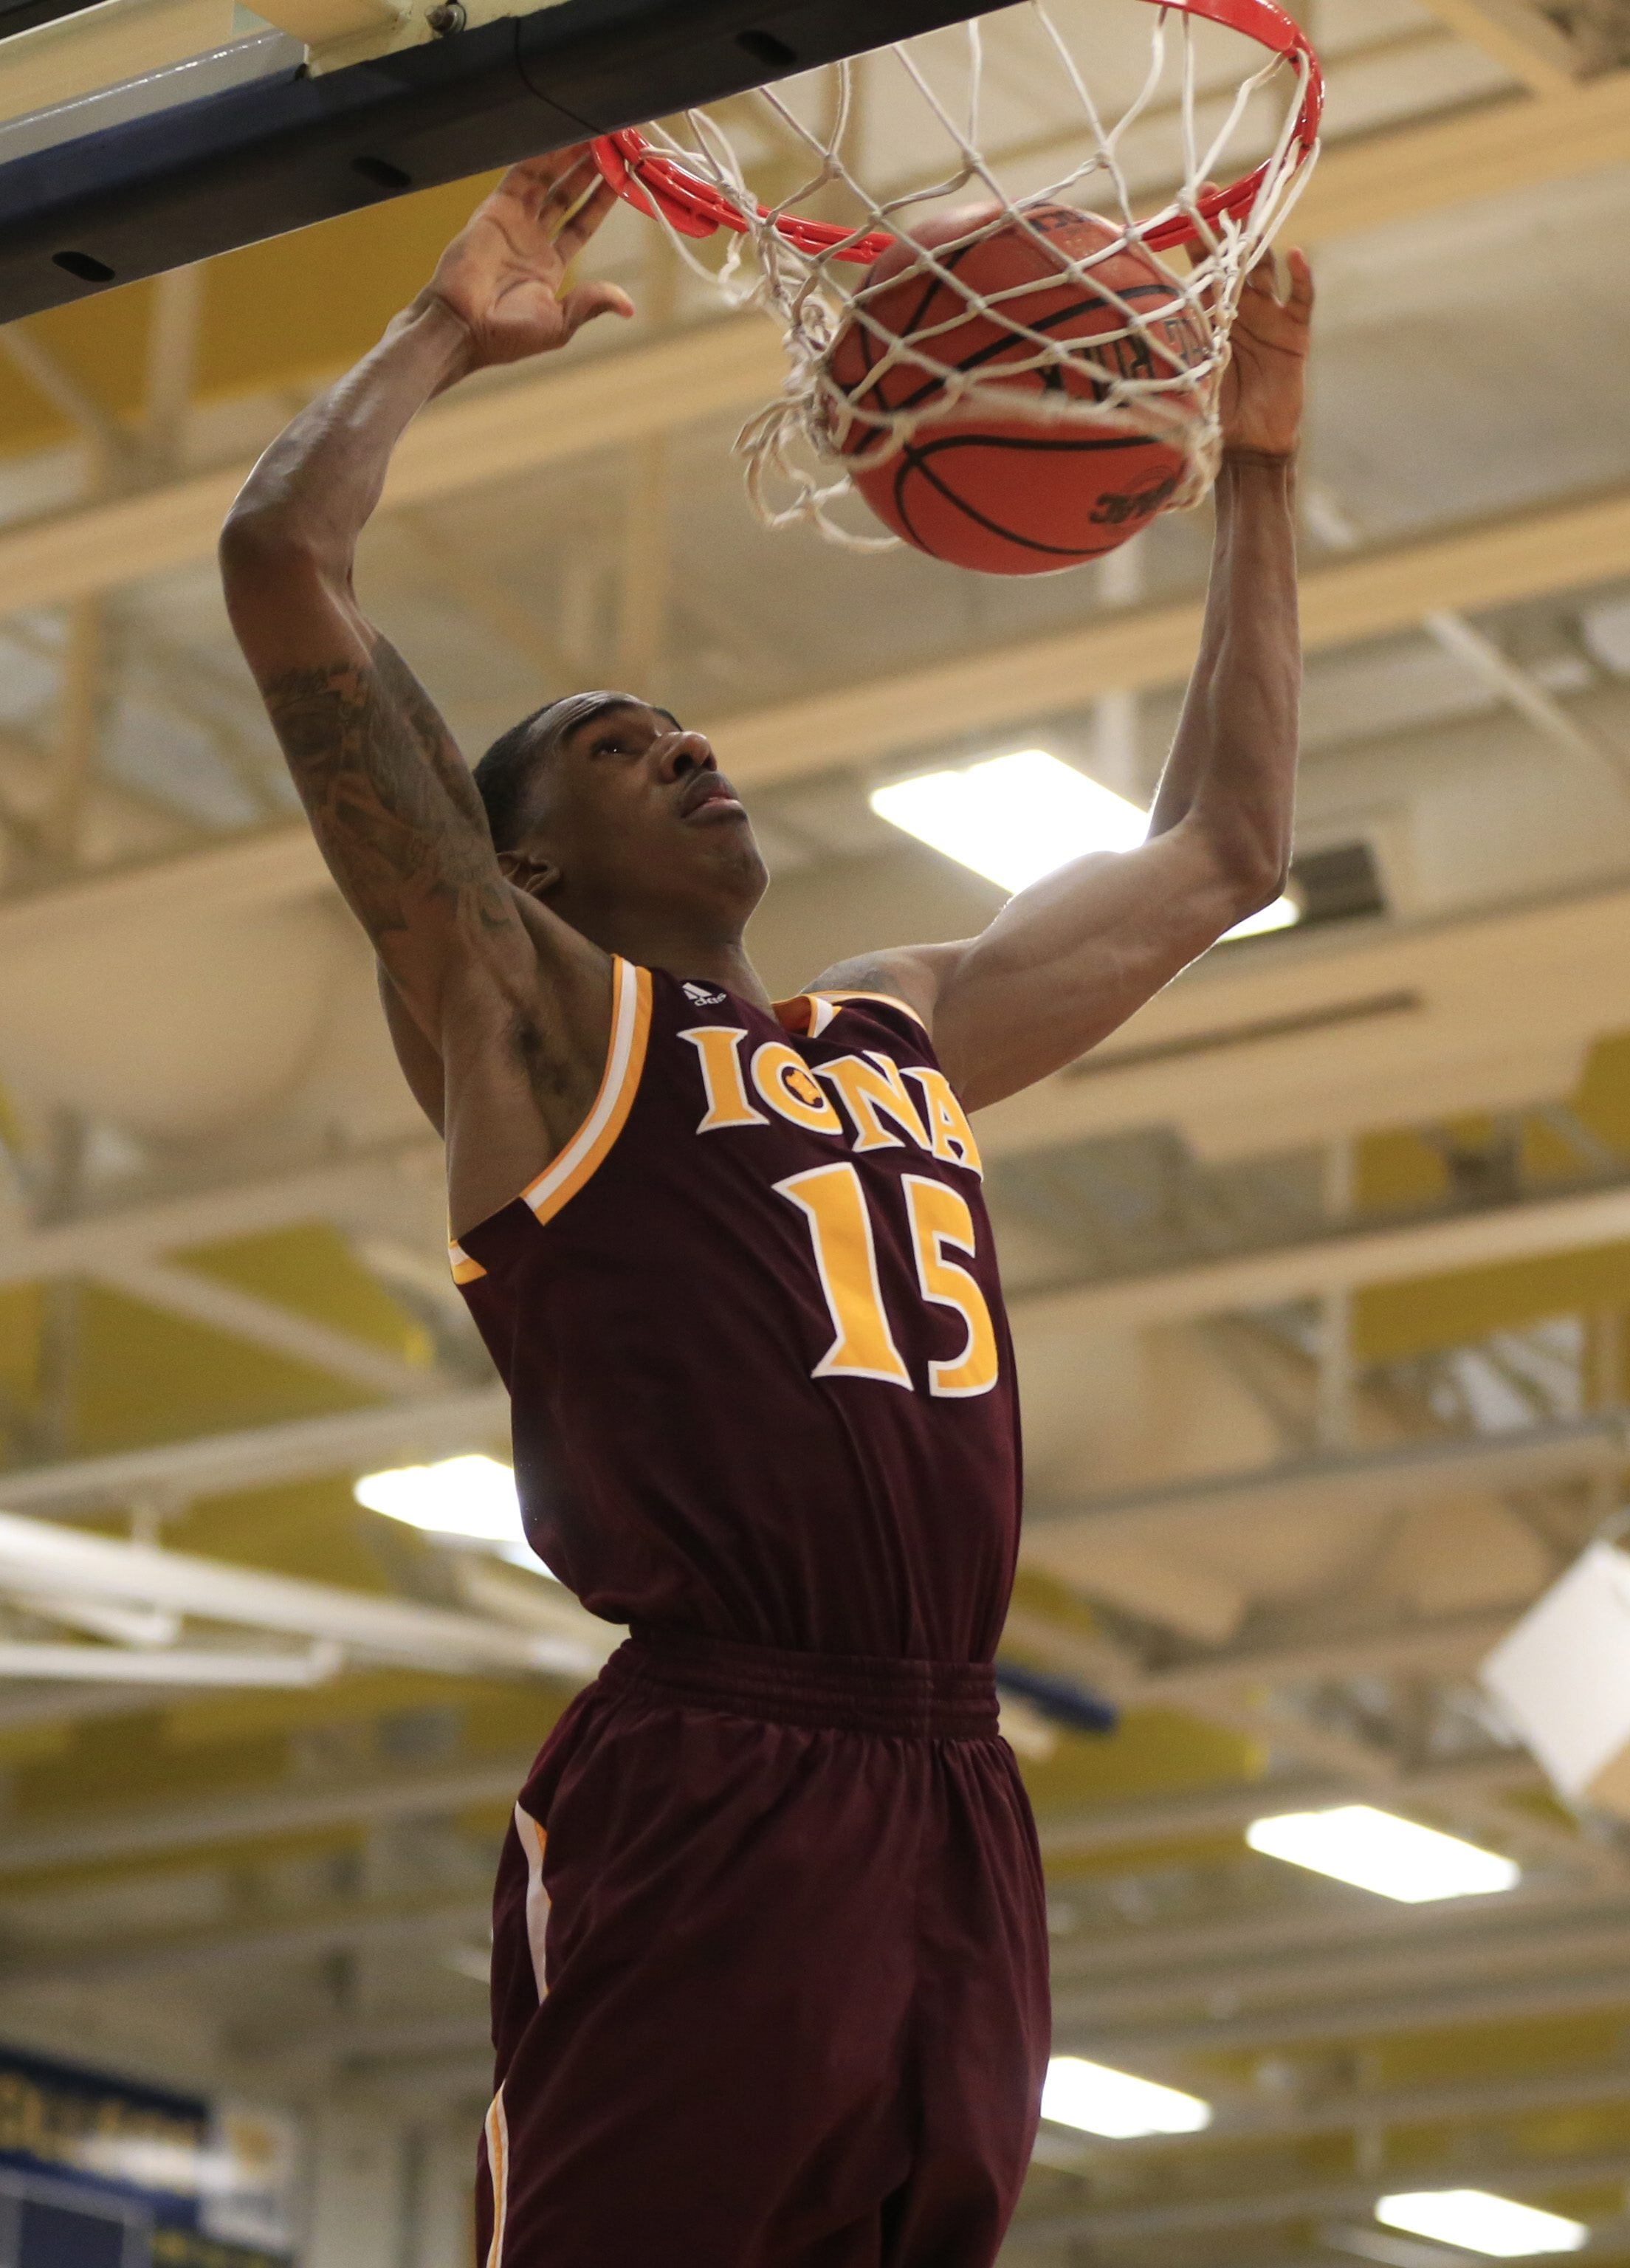 Iona College's Deyshonee Much, a former UB recruit, throws down two of his career-high 30 points.